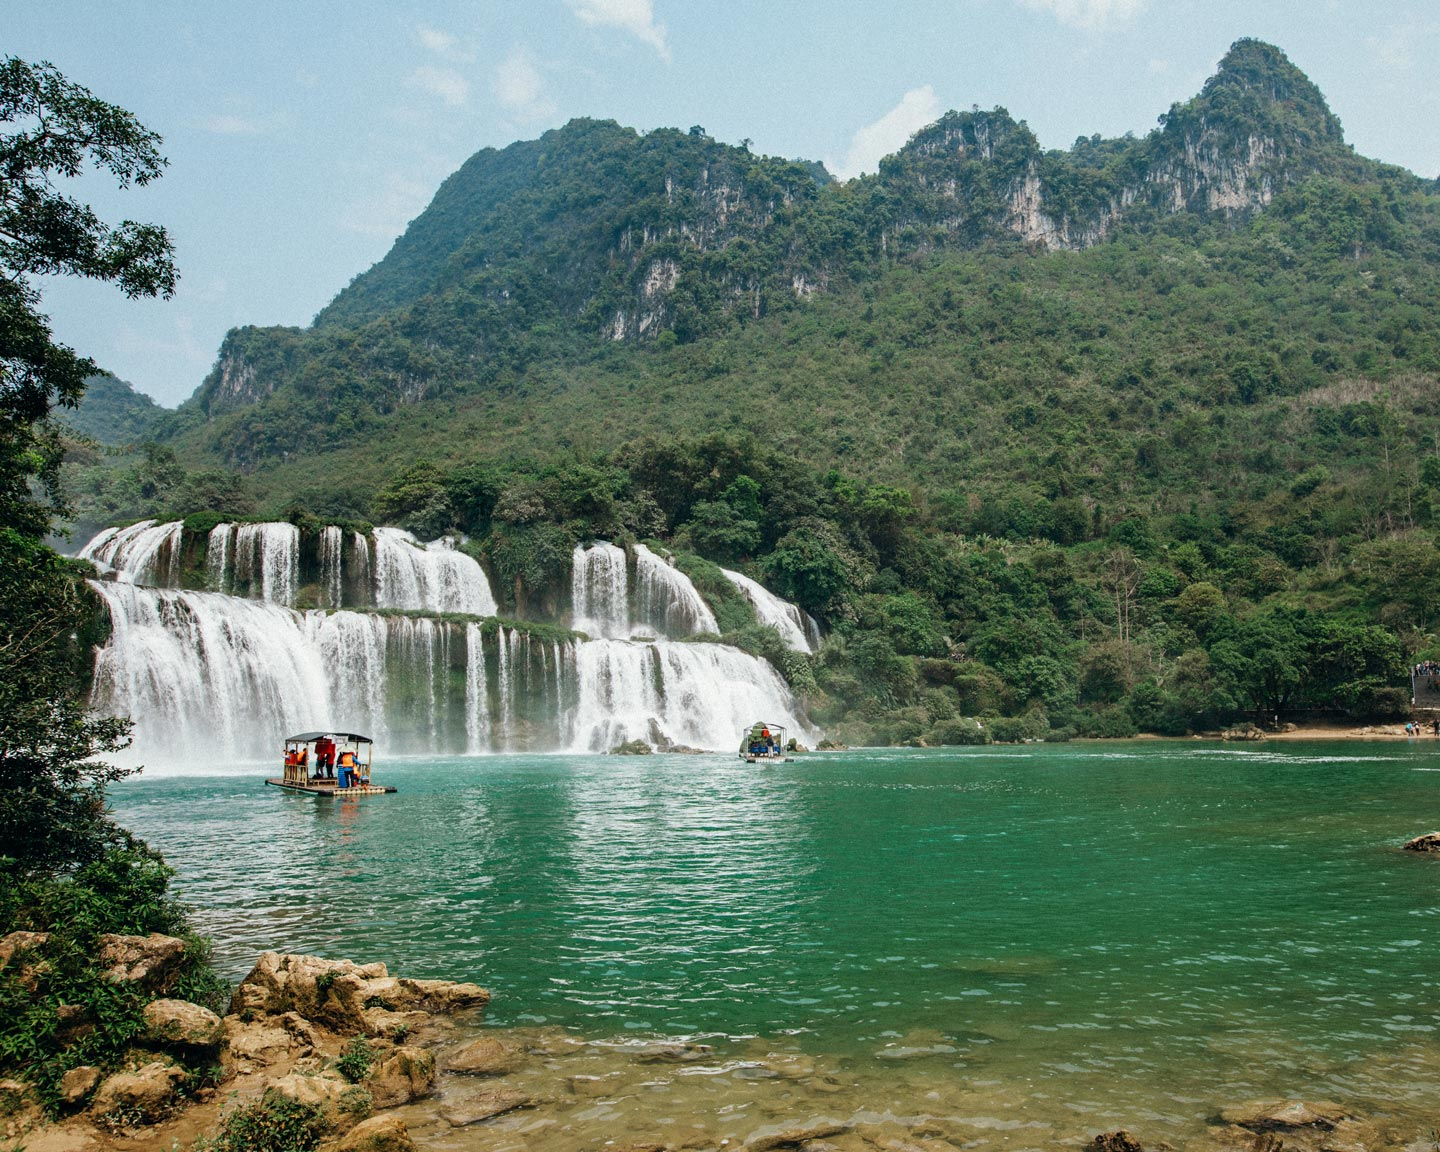 cao-bang-ban-gioc-waterfall-vietnam